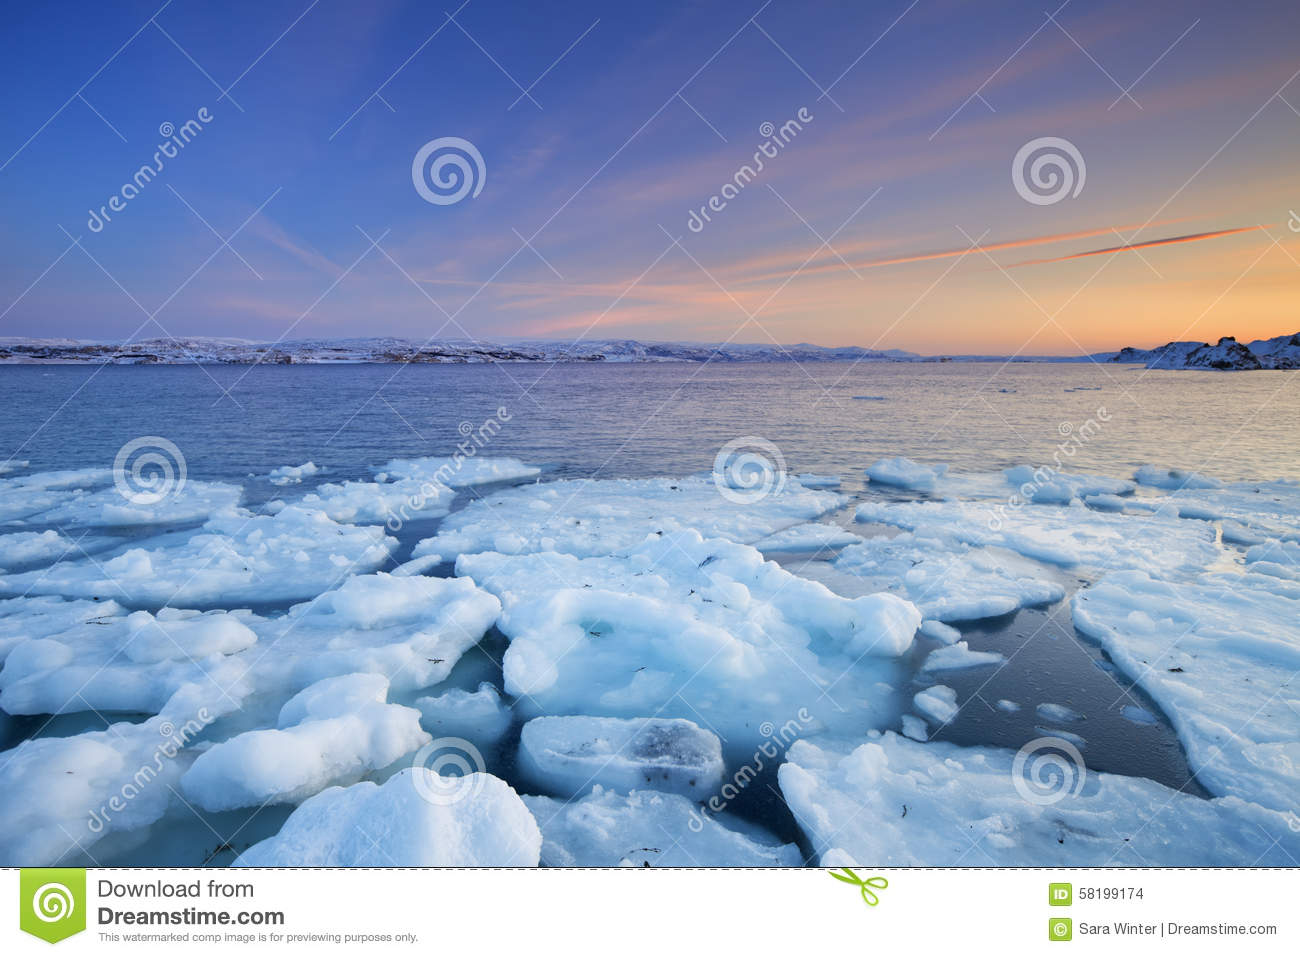 Ice floes at sunset, Arctic Ocean, Norway